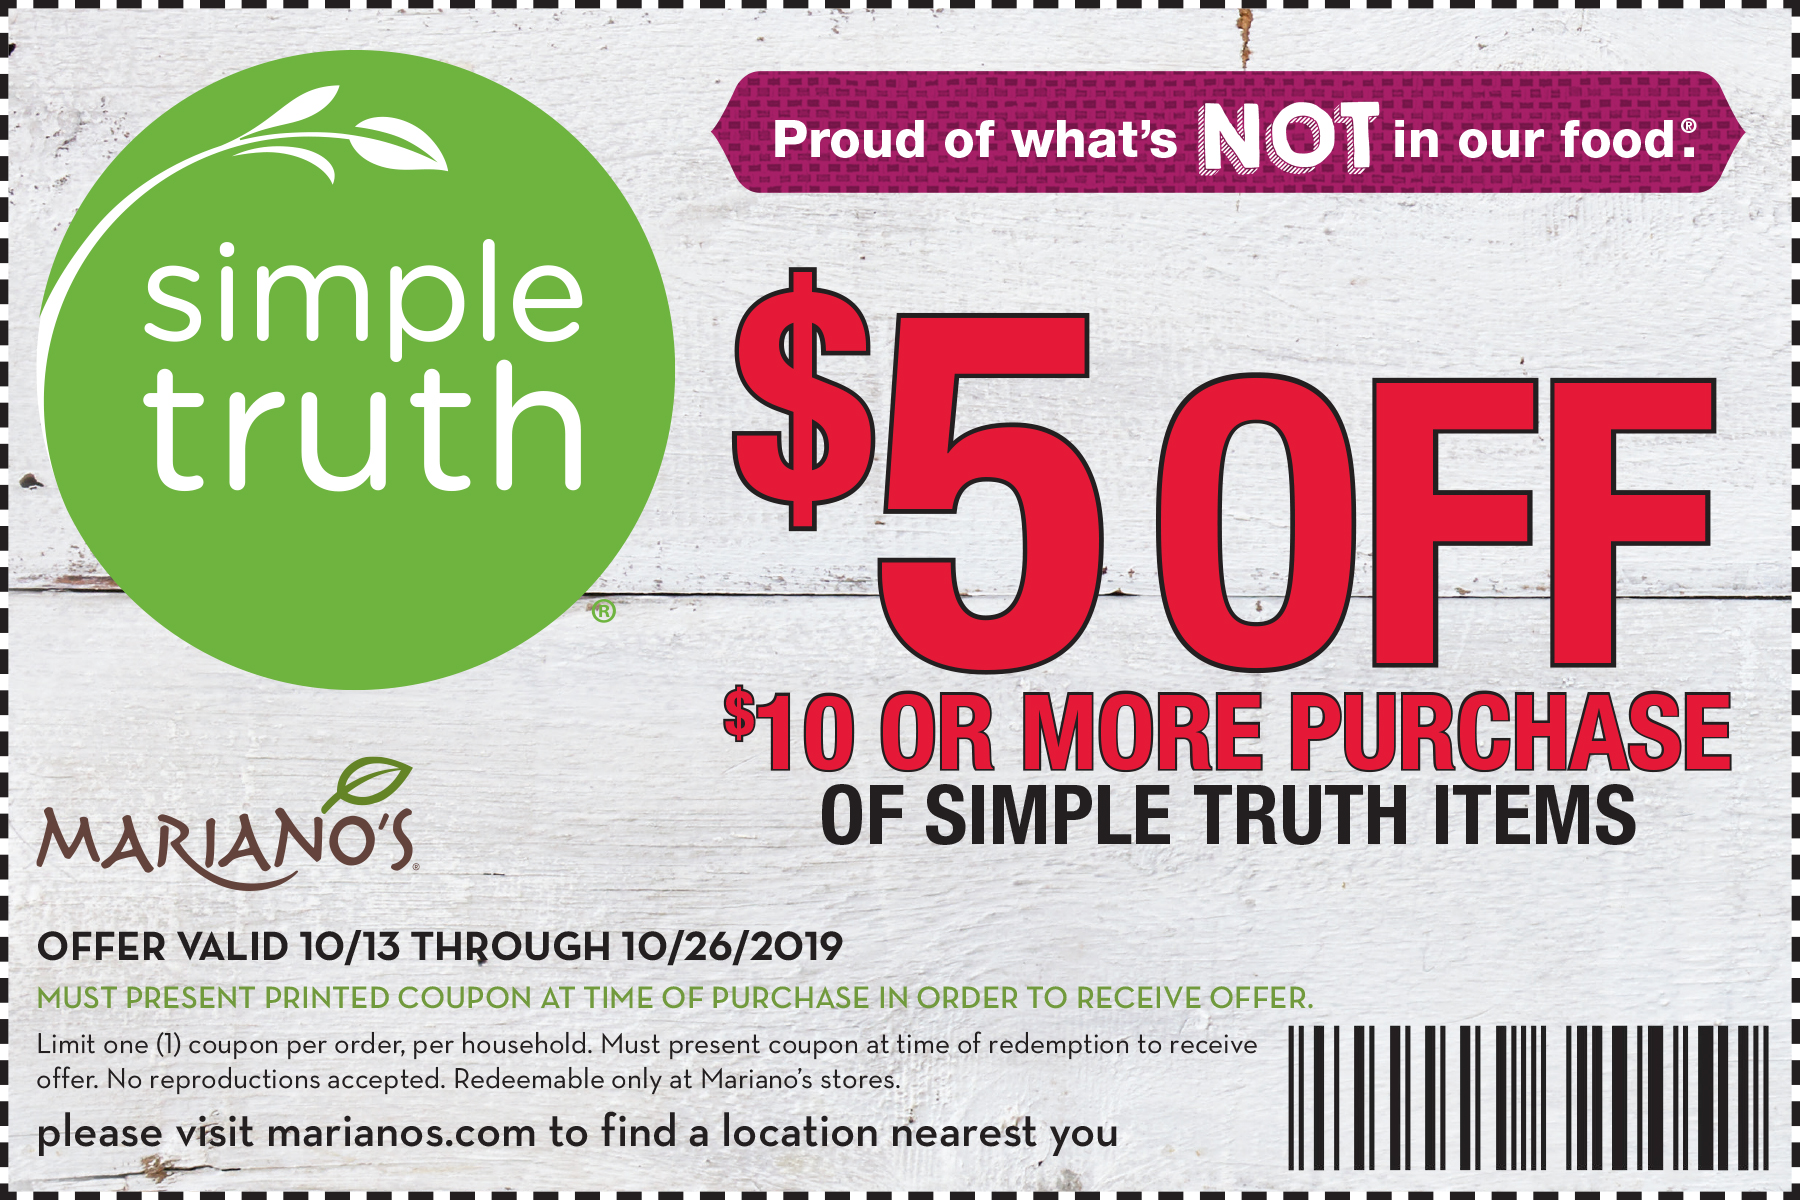 $5 Off Simple Truth at Mariano's